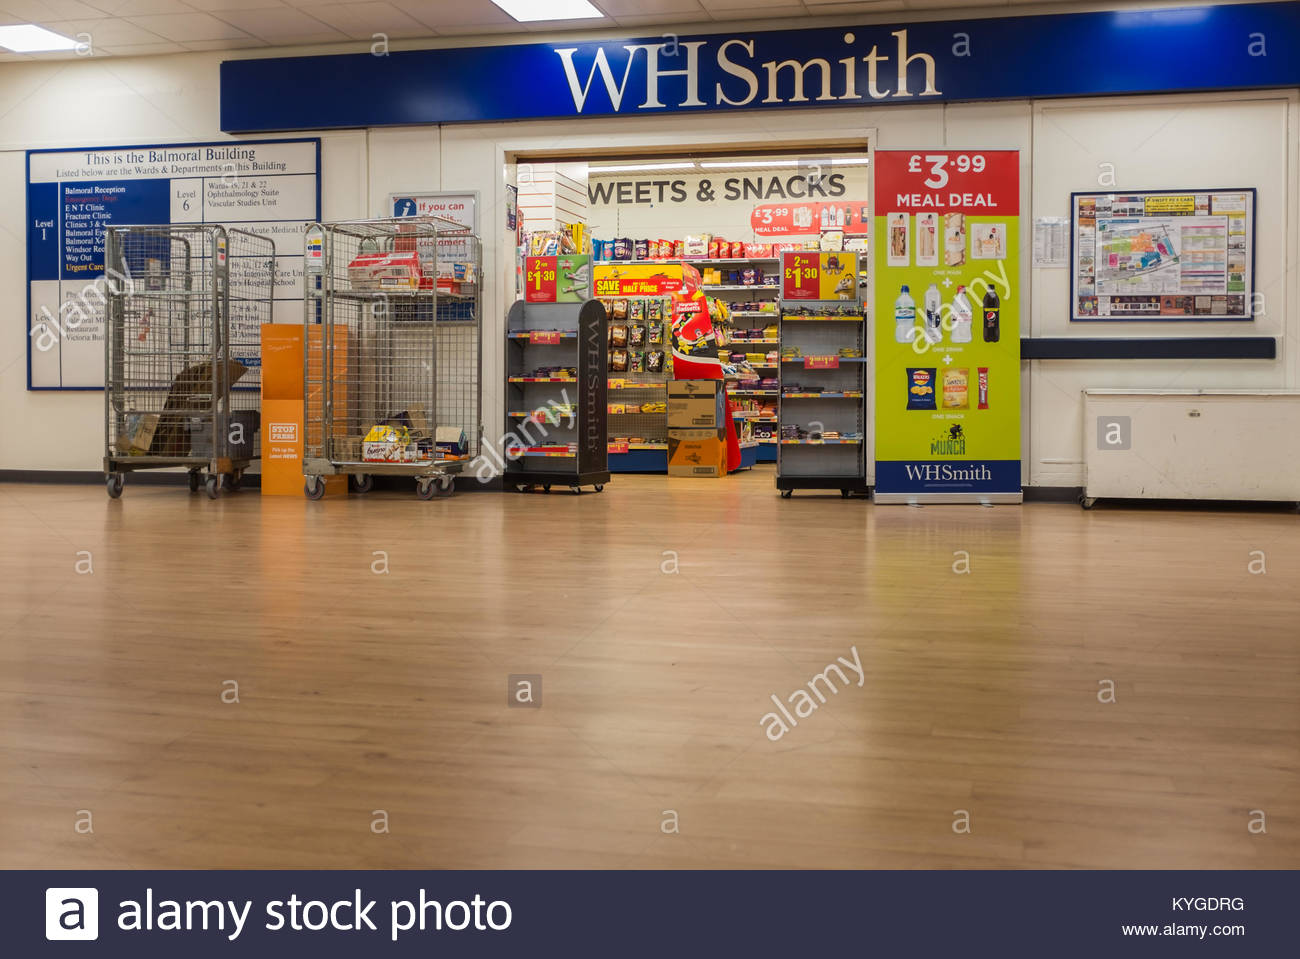 W H Smiths shop advertising offers, various sweets and drinks. Inside an NHS hospital England UK - Stock Image